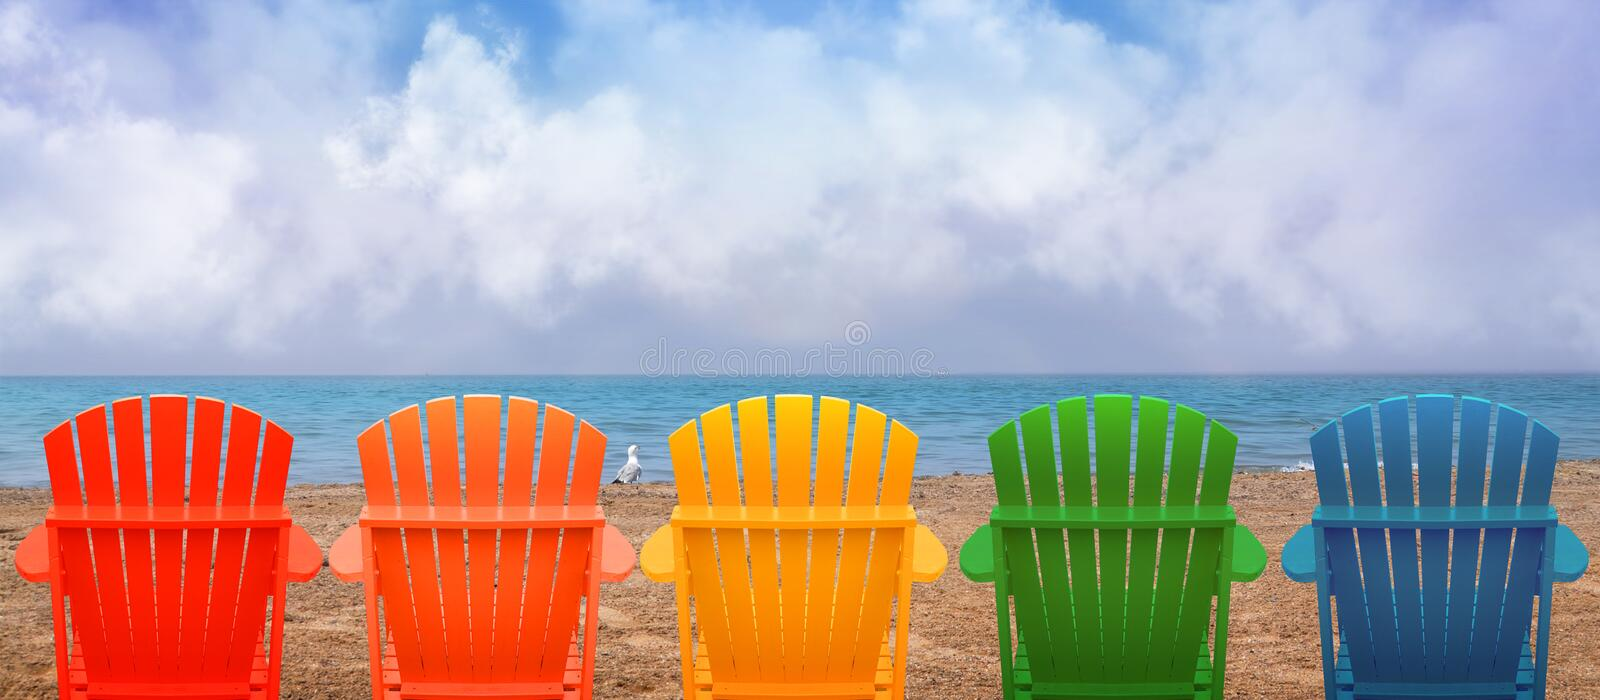 Vacation Beach Chairs On Sand Stock Image Image Of Coastline Retirement 42681503